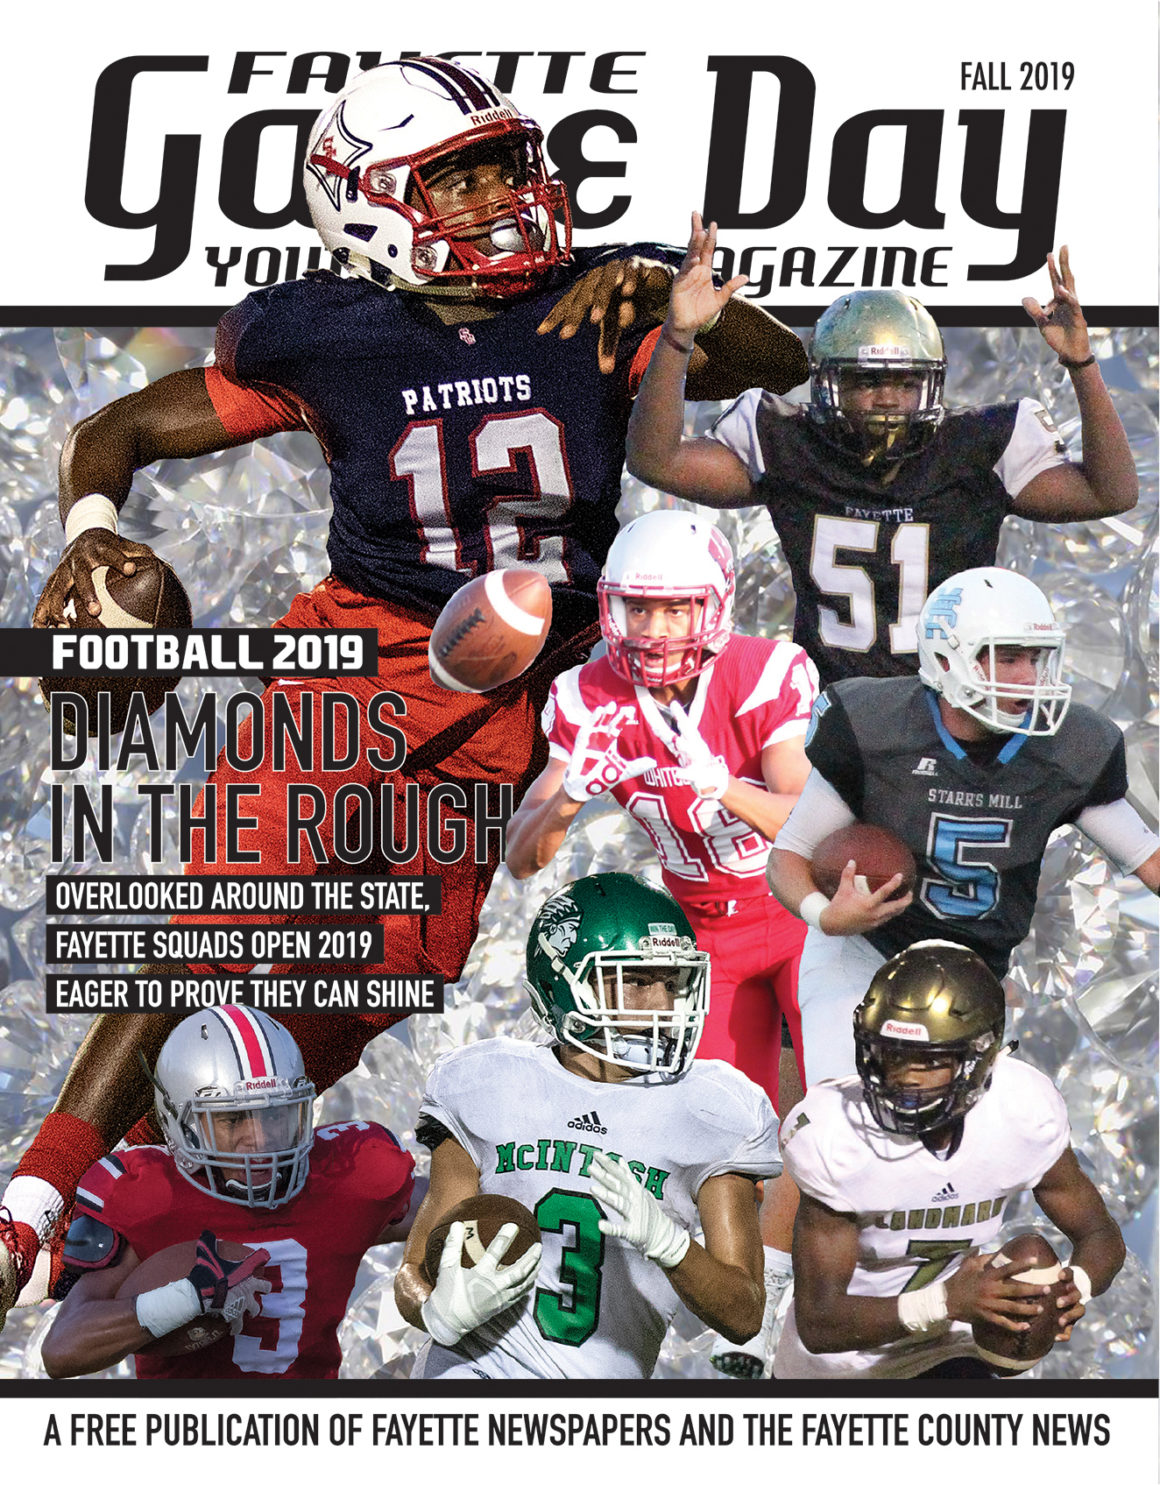 Fayette Game Day Football 2019 Preview